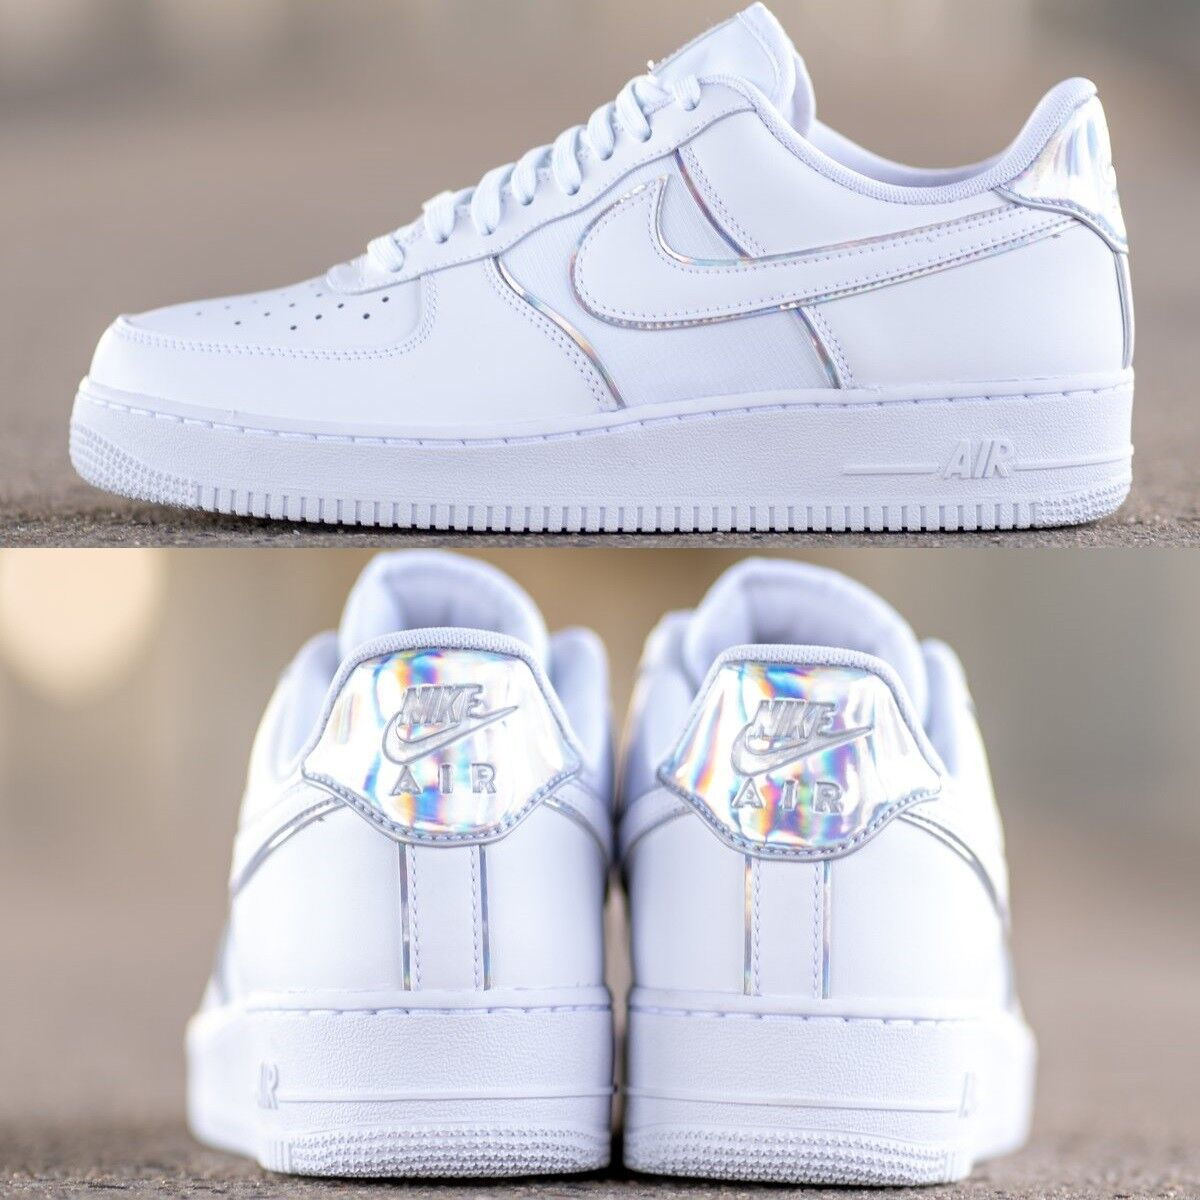 huge discount ea6e3 867ce Nike Air Force Force Force 1 Lv8 4 Y2K Low Sneakers Men s Lifestyle Comfy  shoes White